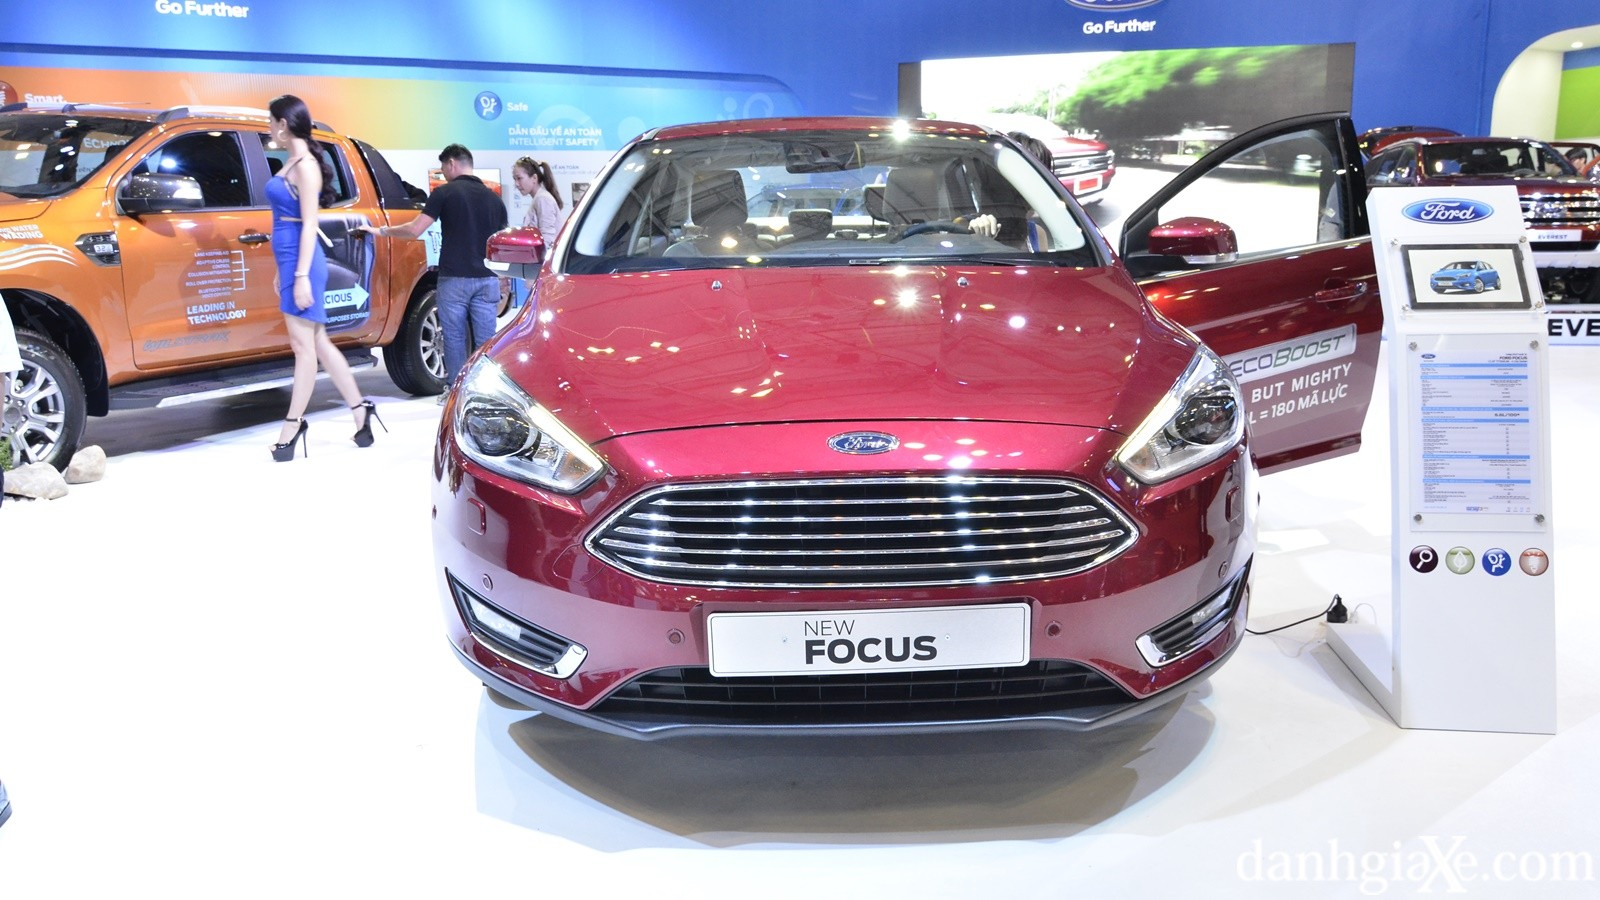 luoi-tan-nhiet-ford-focus-2016